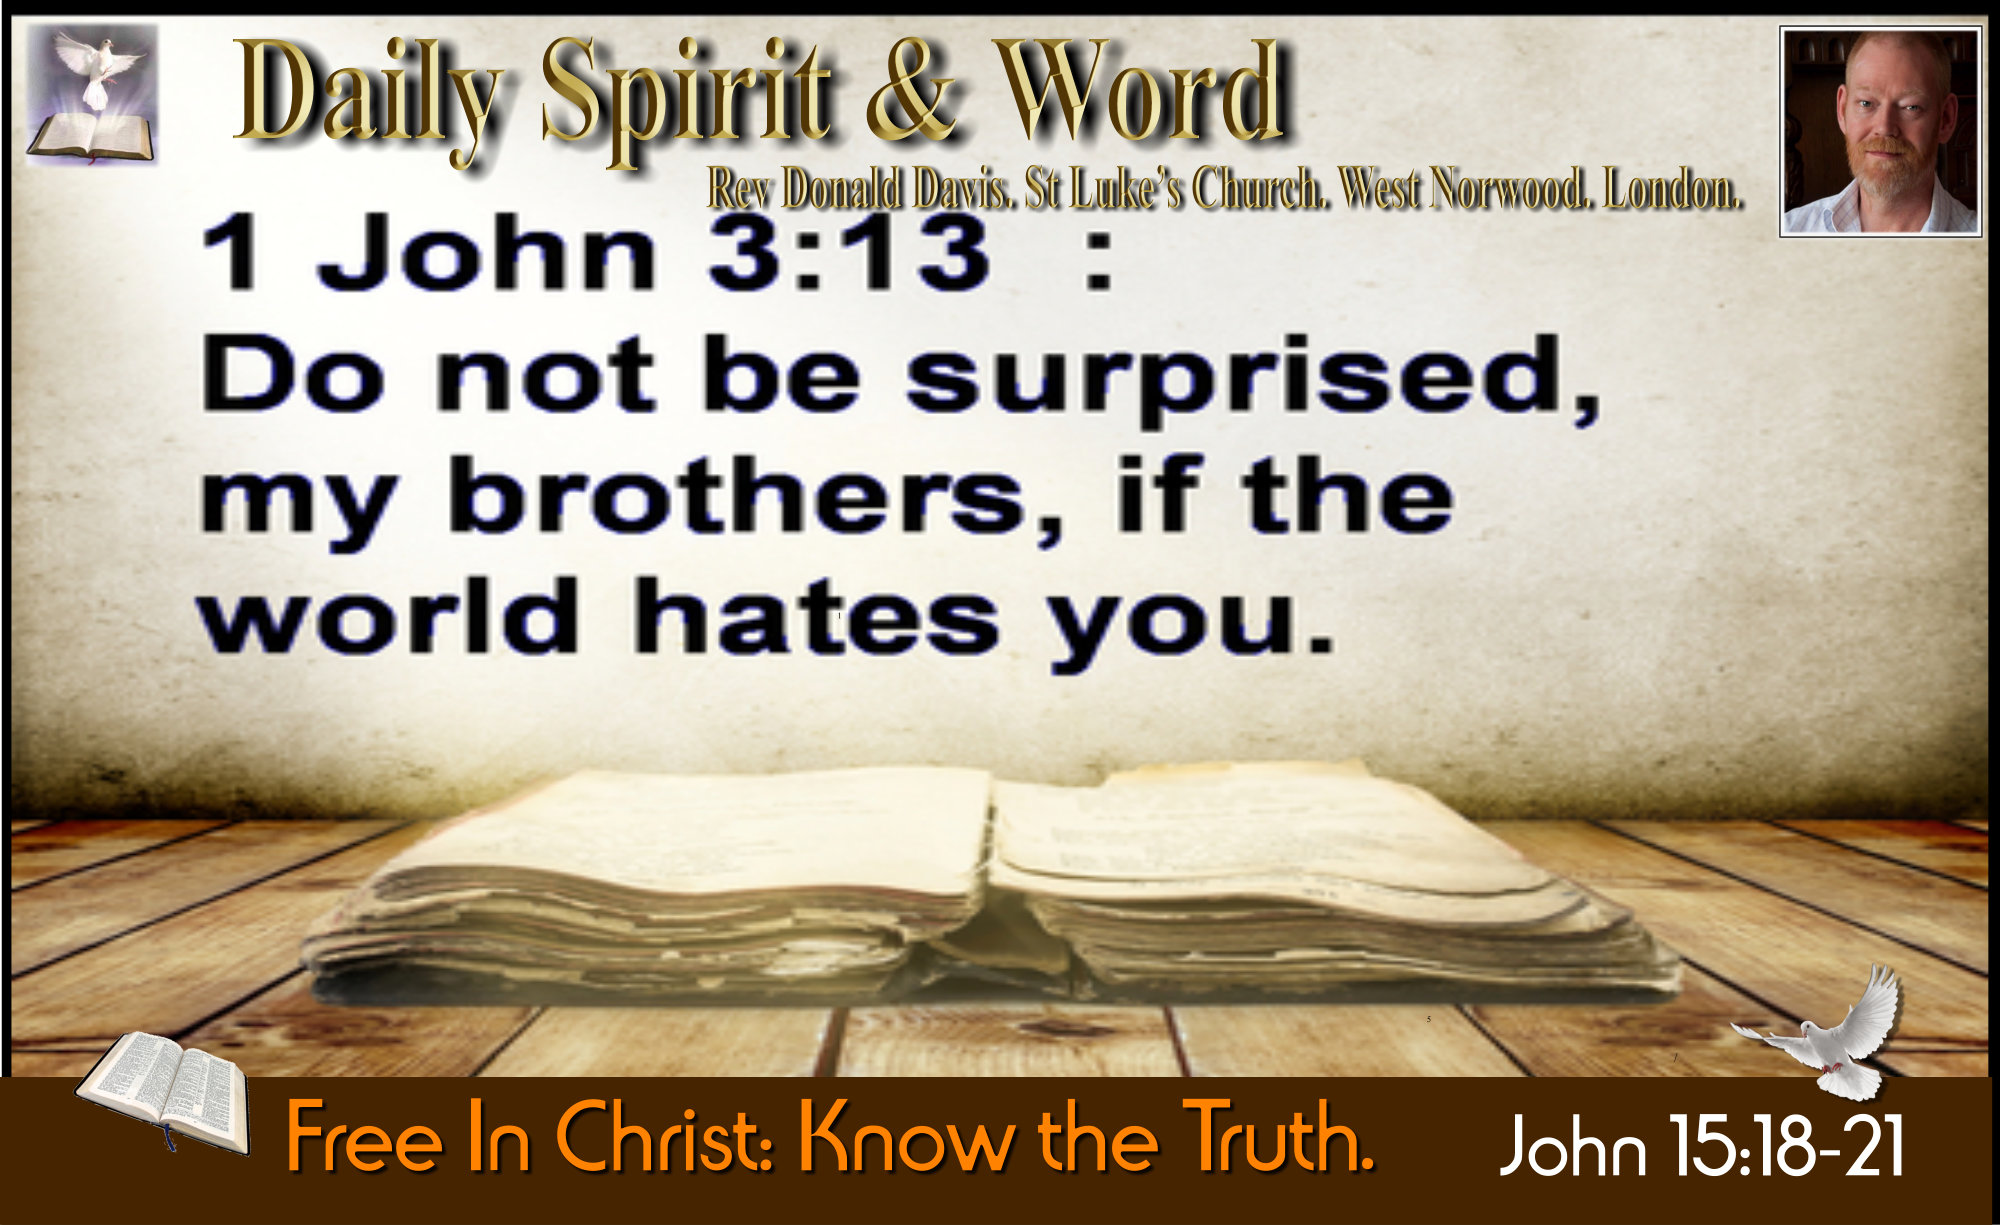 The World hated Jesus, don't be surprised when it hates you too